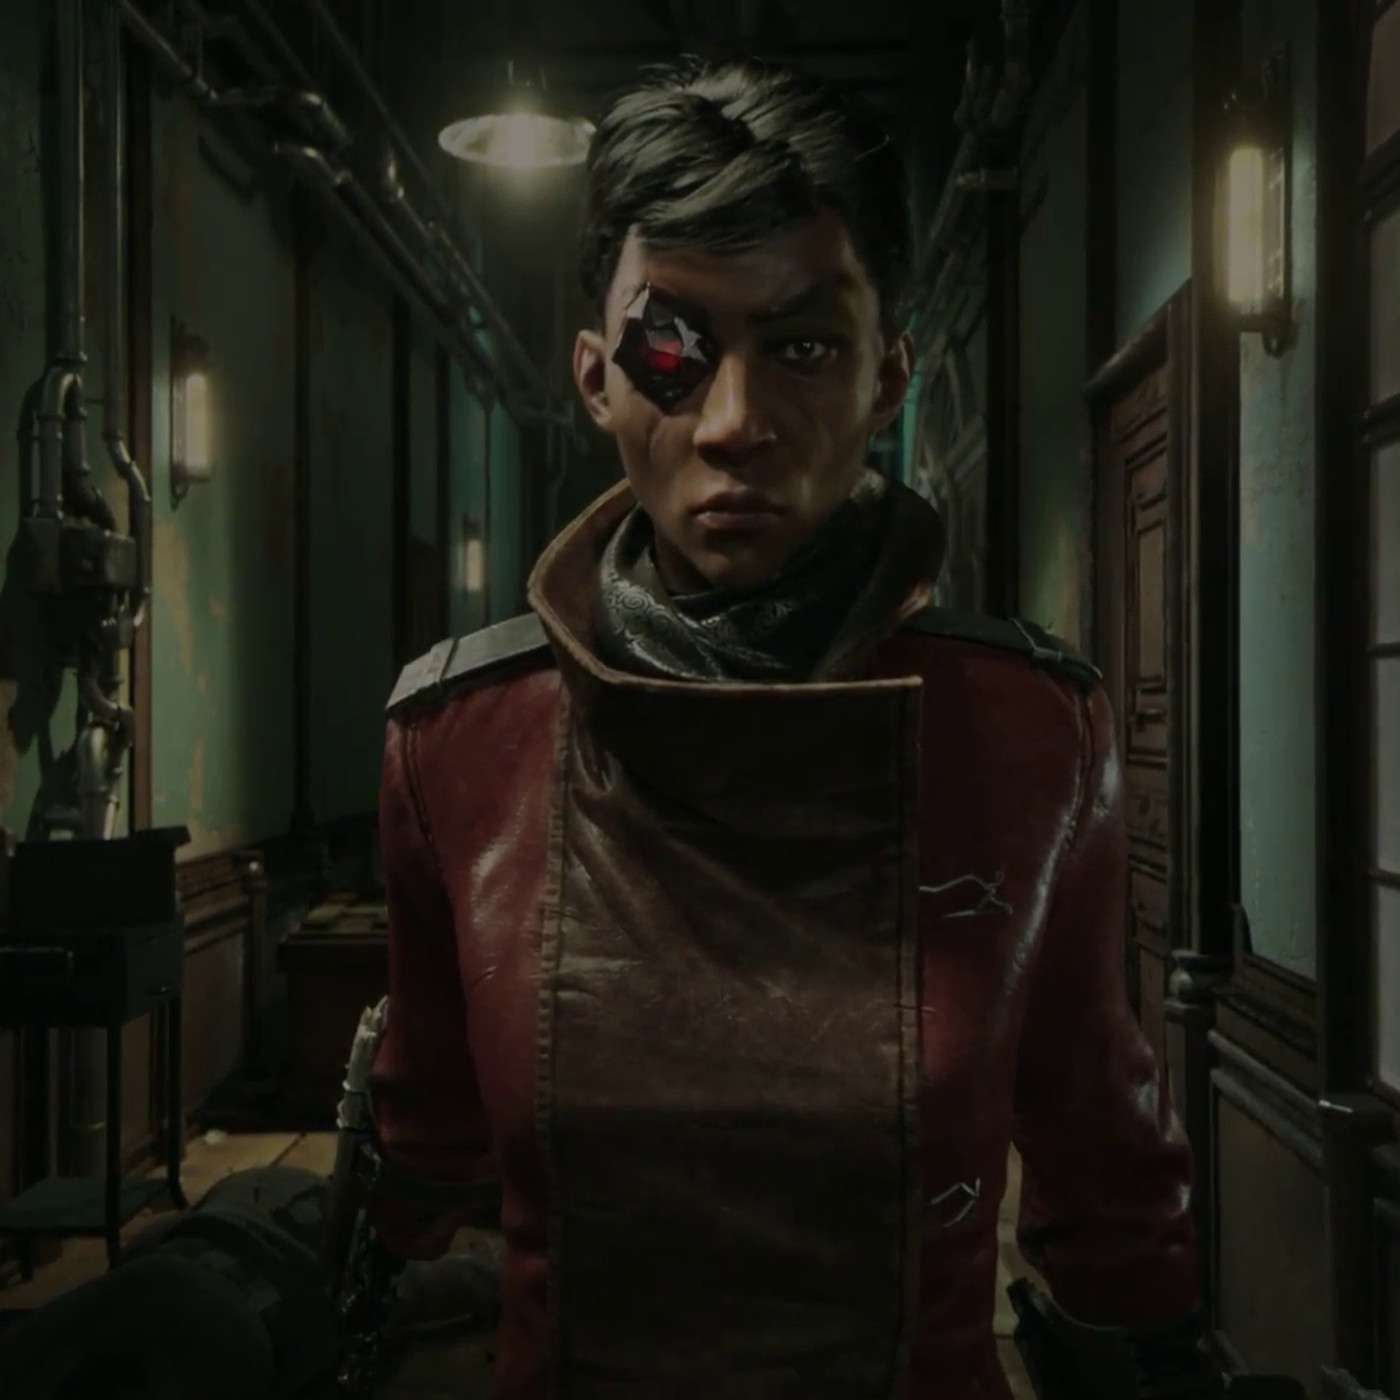 dishonored brings an old